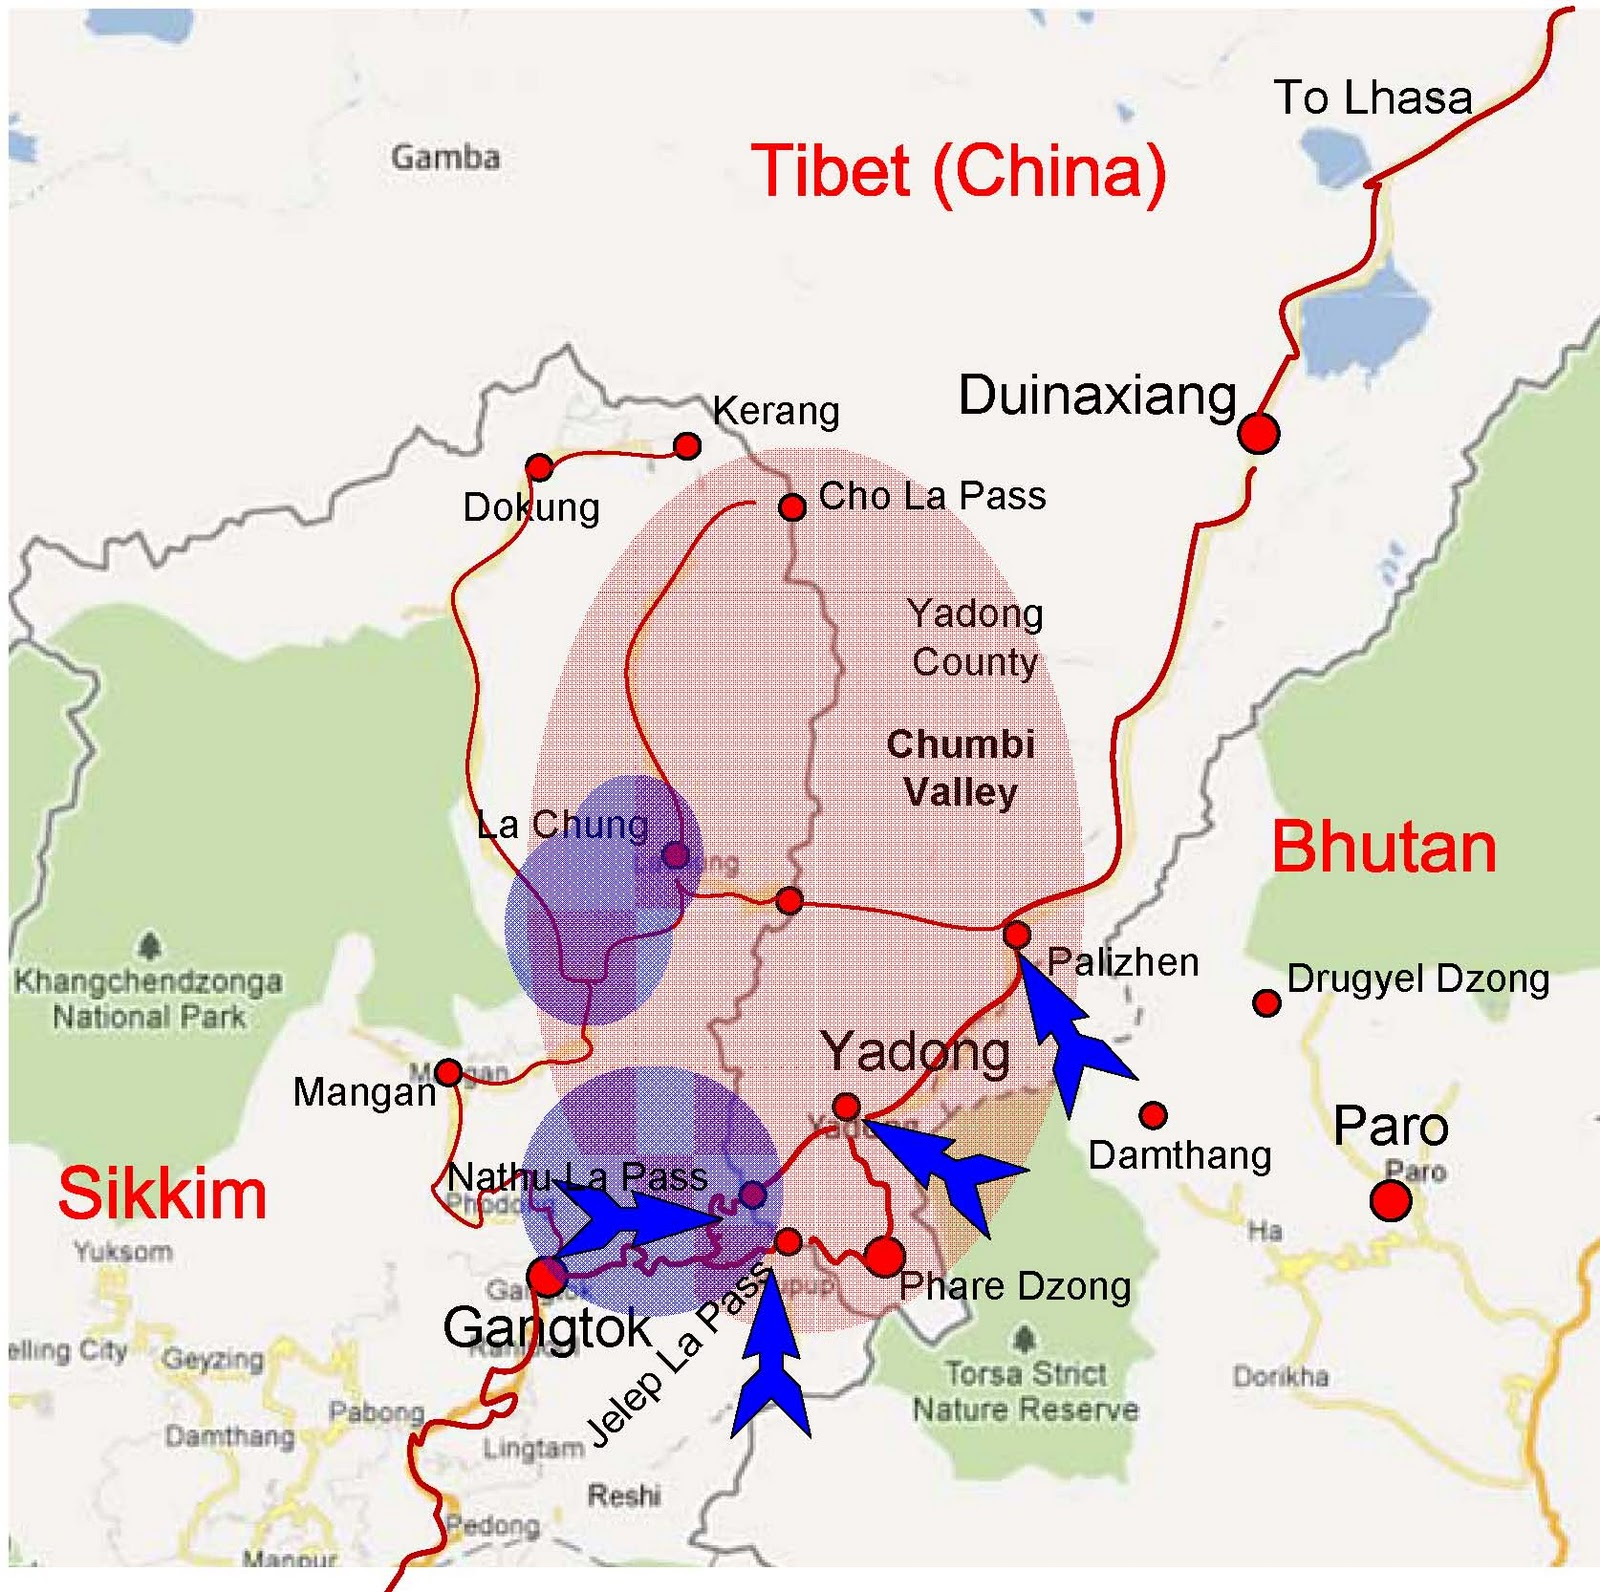 Would India disrupt Bhutan China Border Negotiations ... on australia border map, russia border map, india border changes, spain border map, france border map, pakistan border map, western chinese border map, india china boundary map,